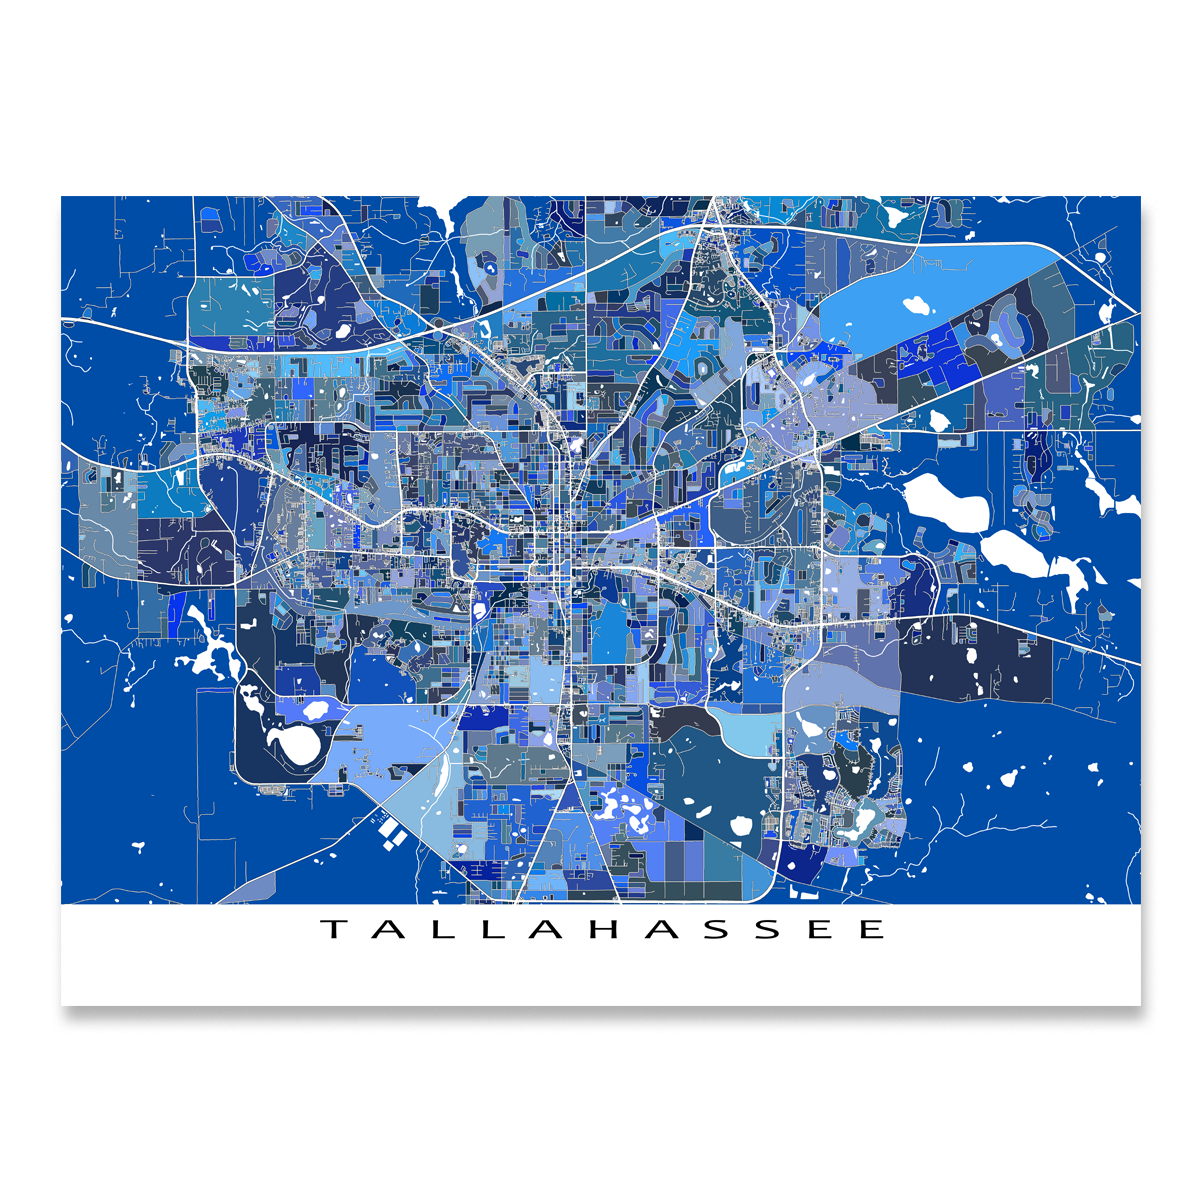 Tallahassee Map Print, Florida, USA